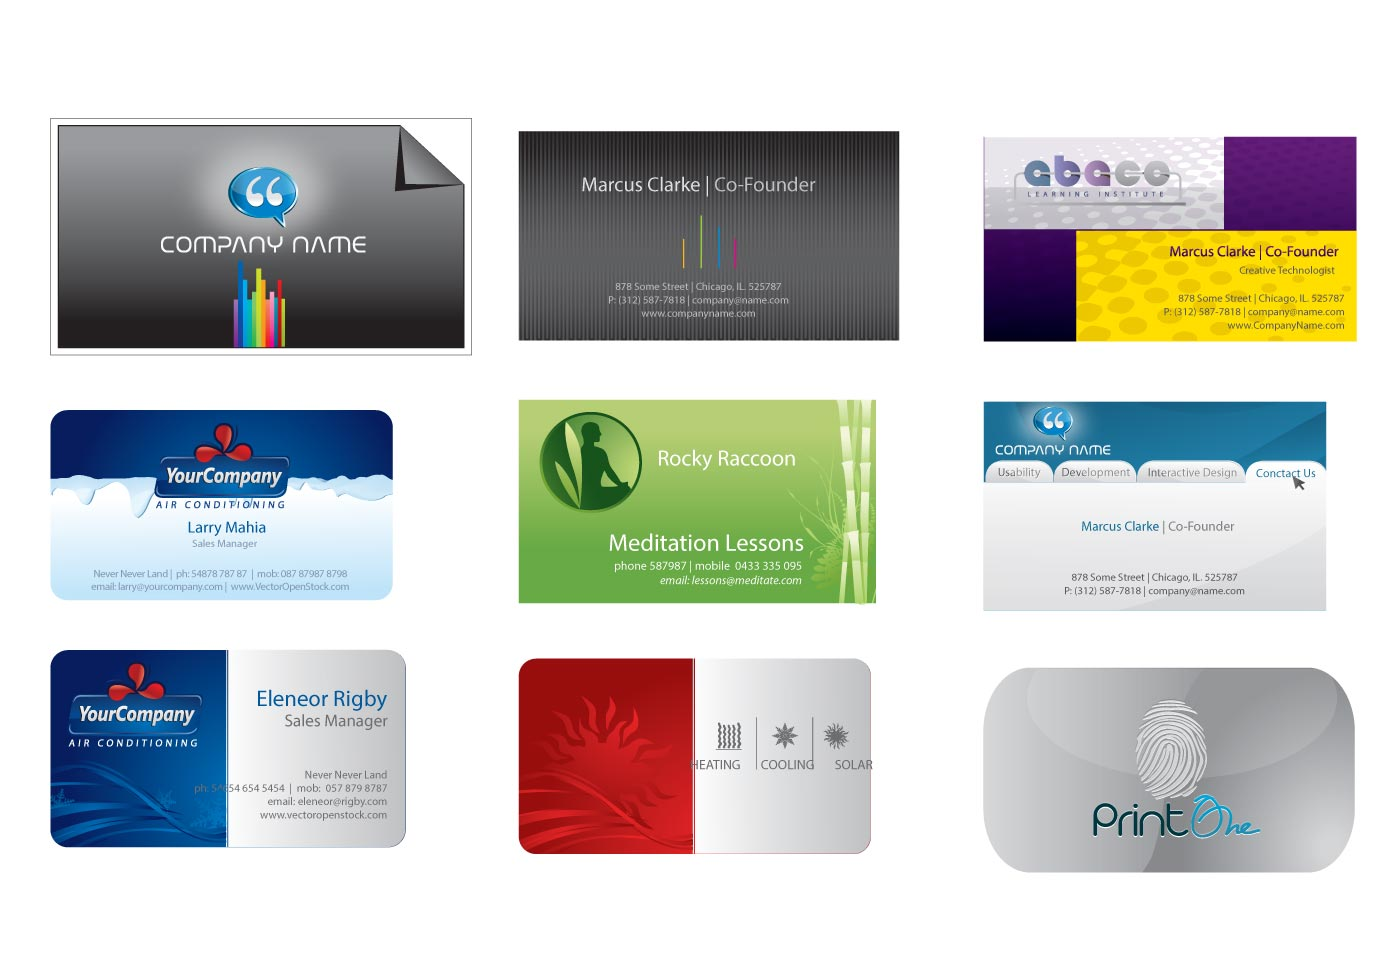 Business card templates download free vector art stock graphics business card templates download free vector art stock graphics images accmission